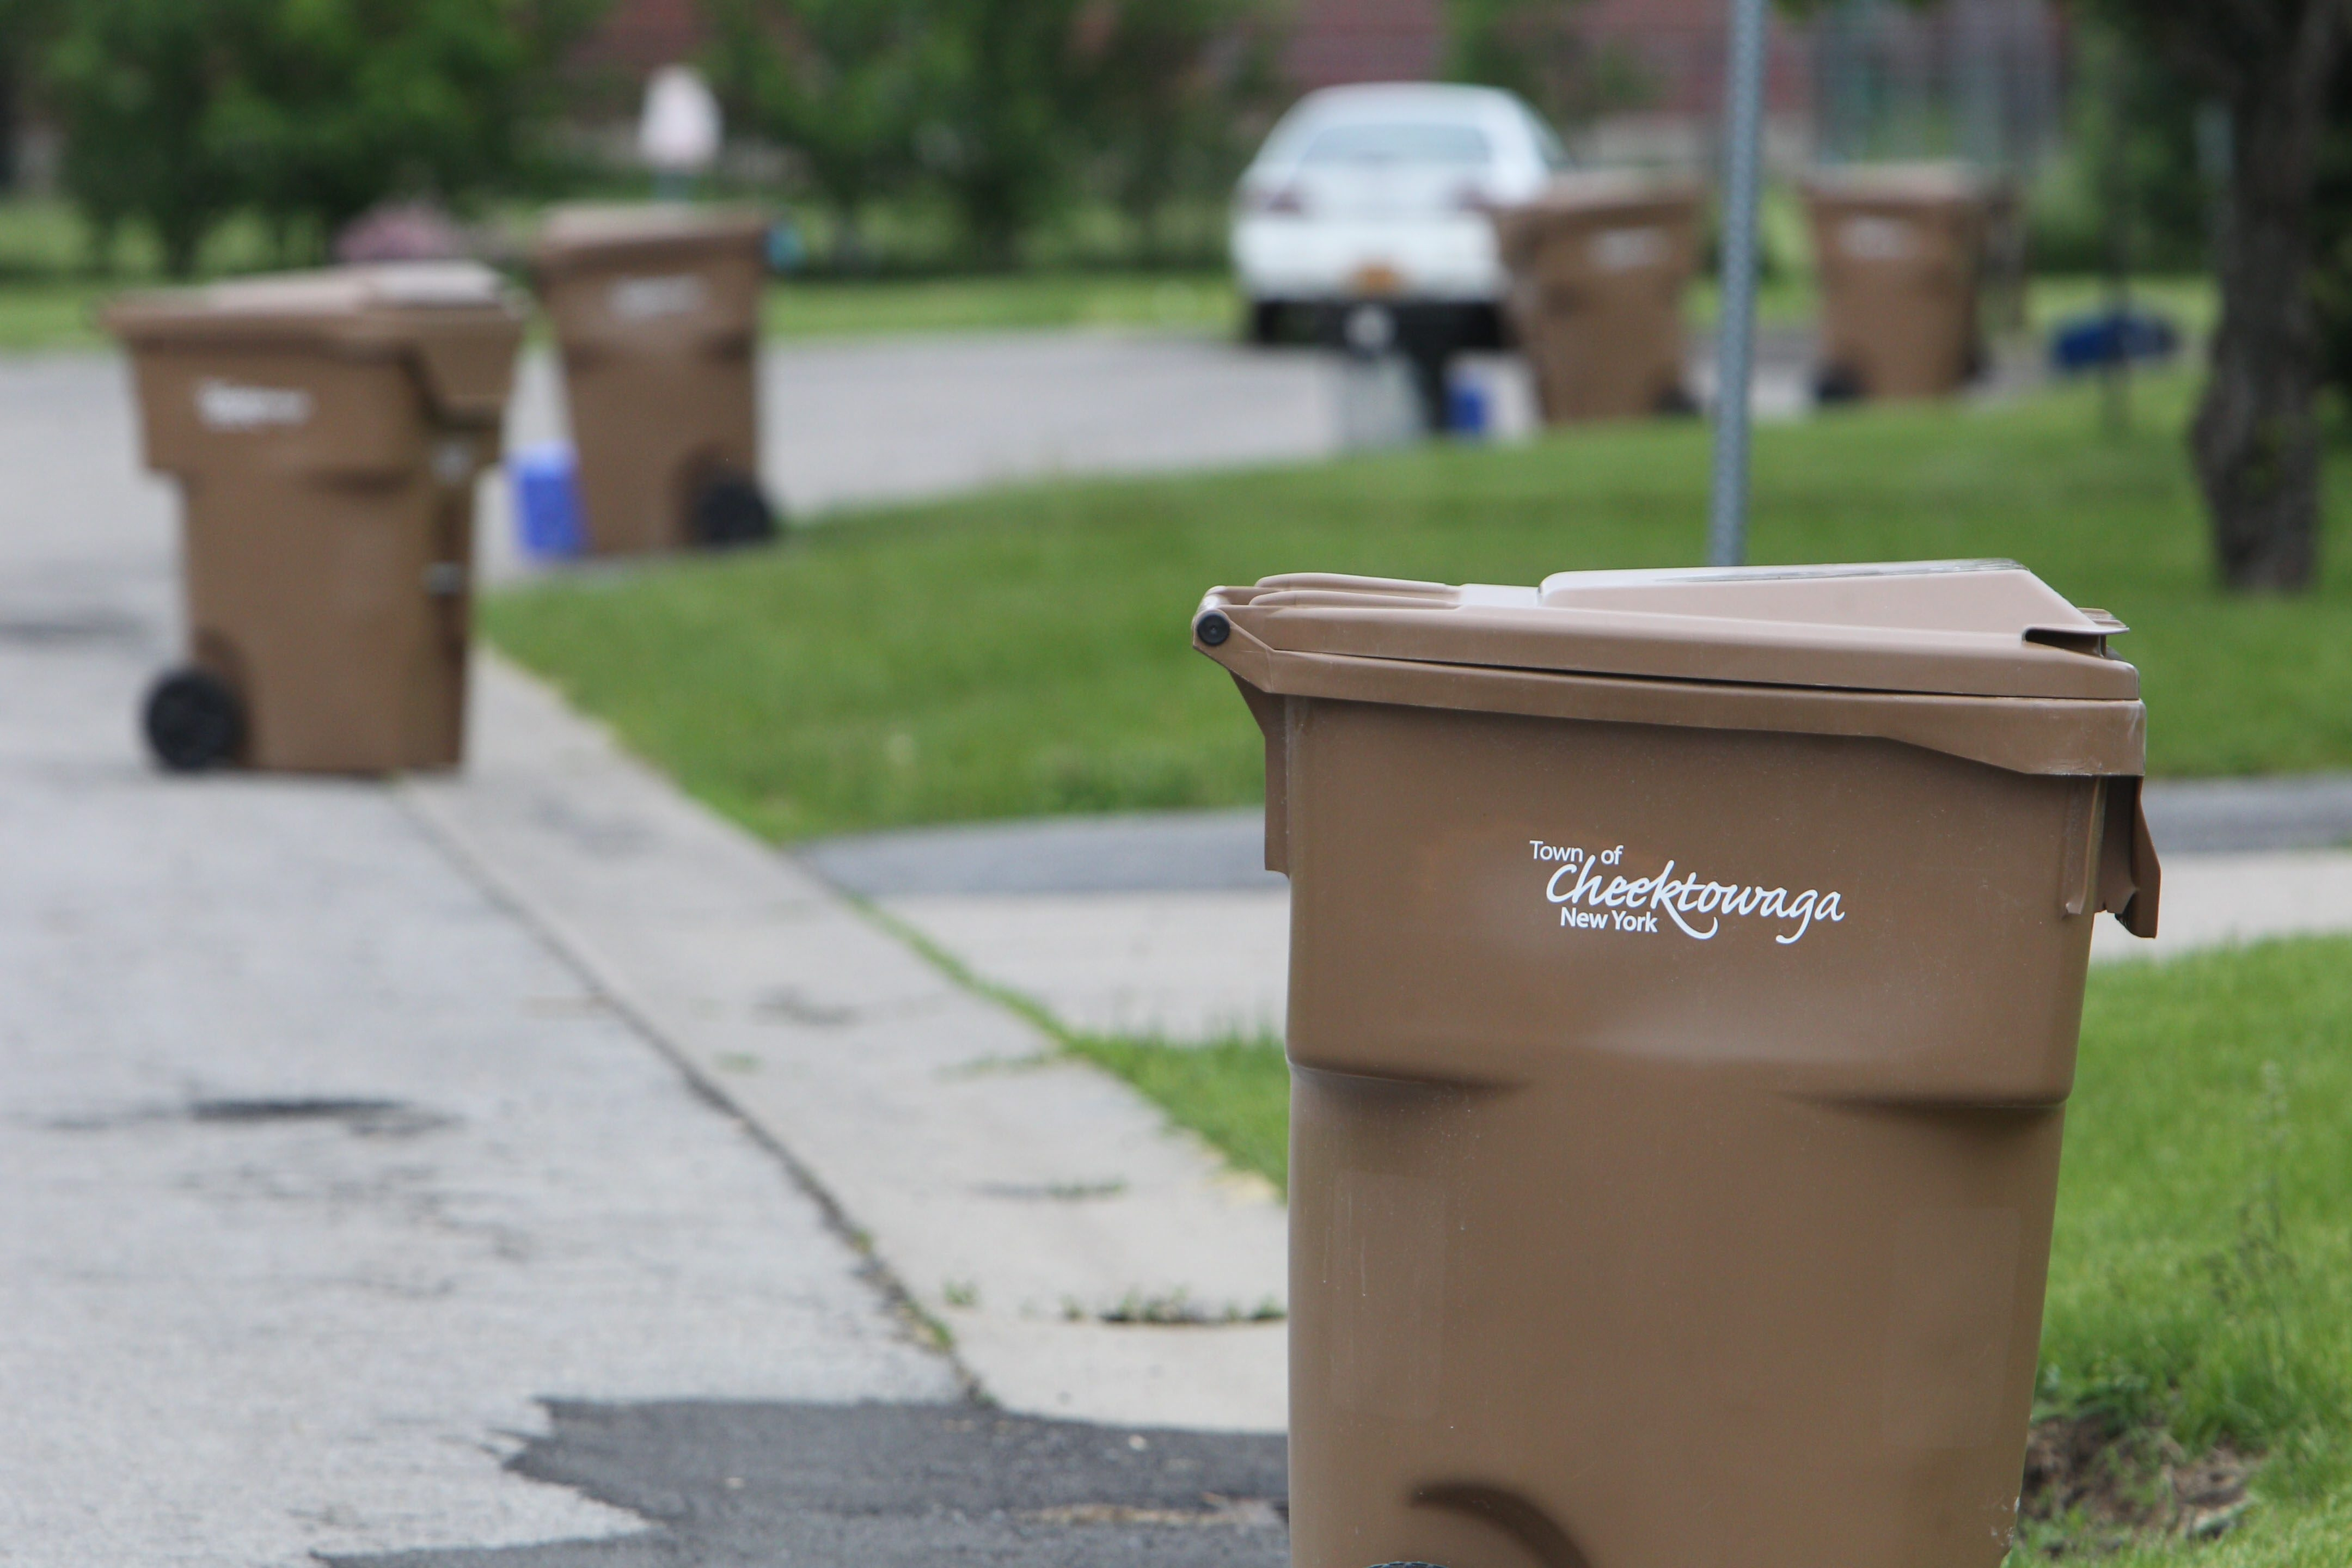 Cheektowaga uses garbage totes, but Lancaster is still pondering whether to use them due to concern over the cost.